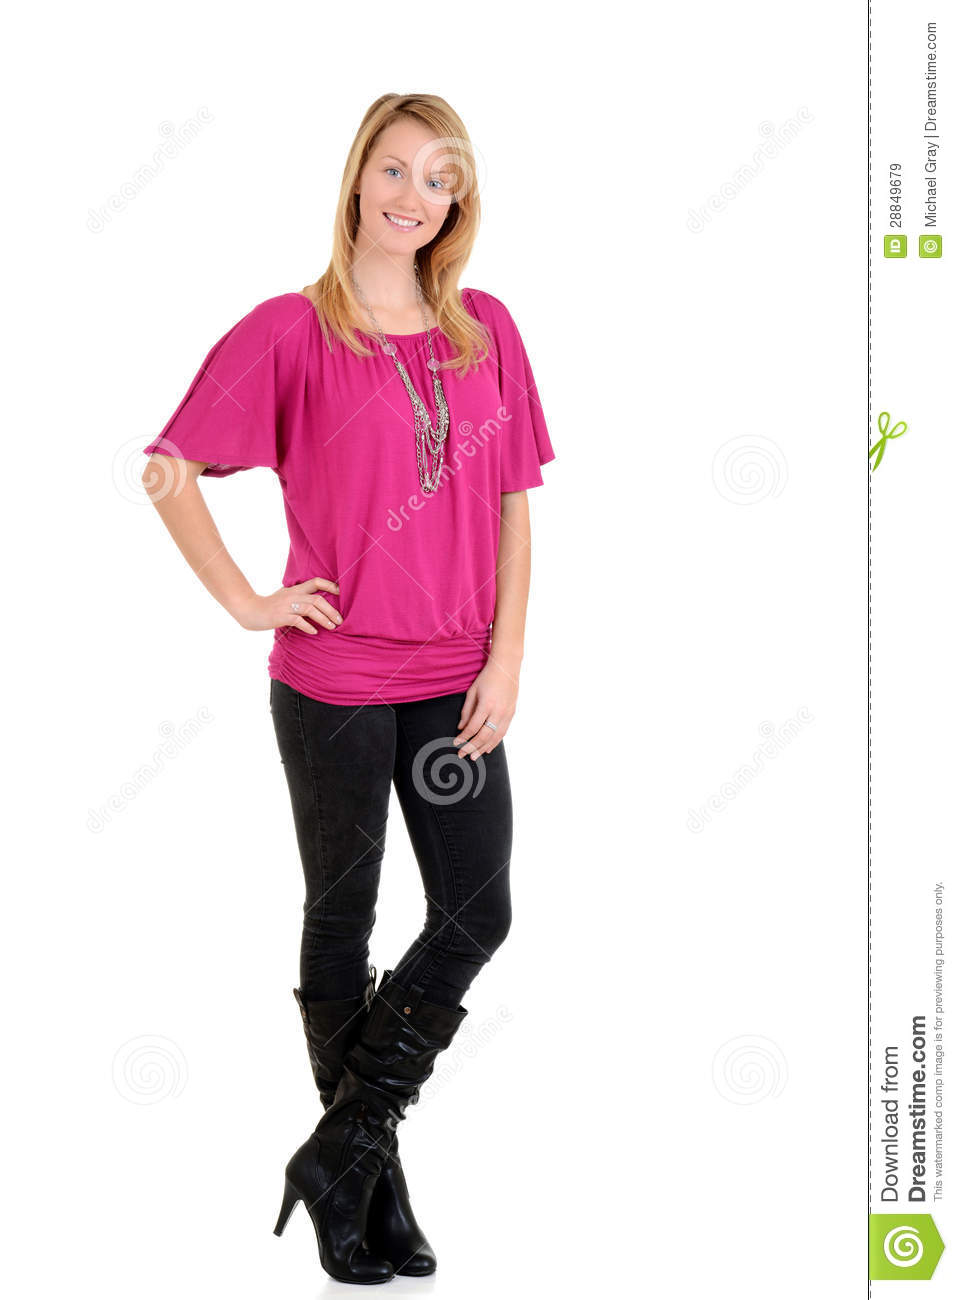 Blond Woman Wearing High Heel Boots Royalty Free Stock ...